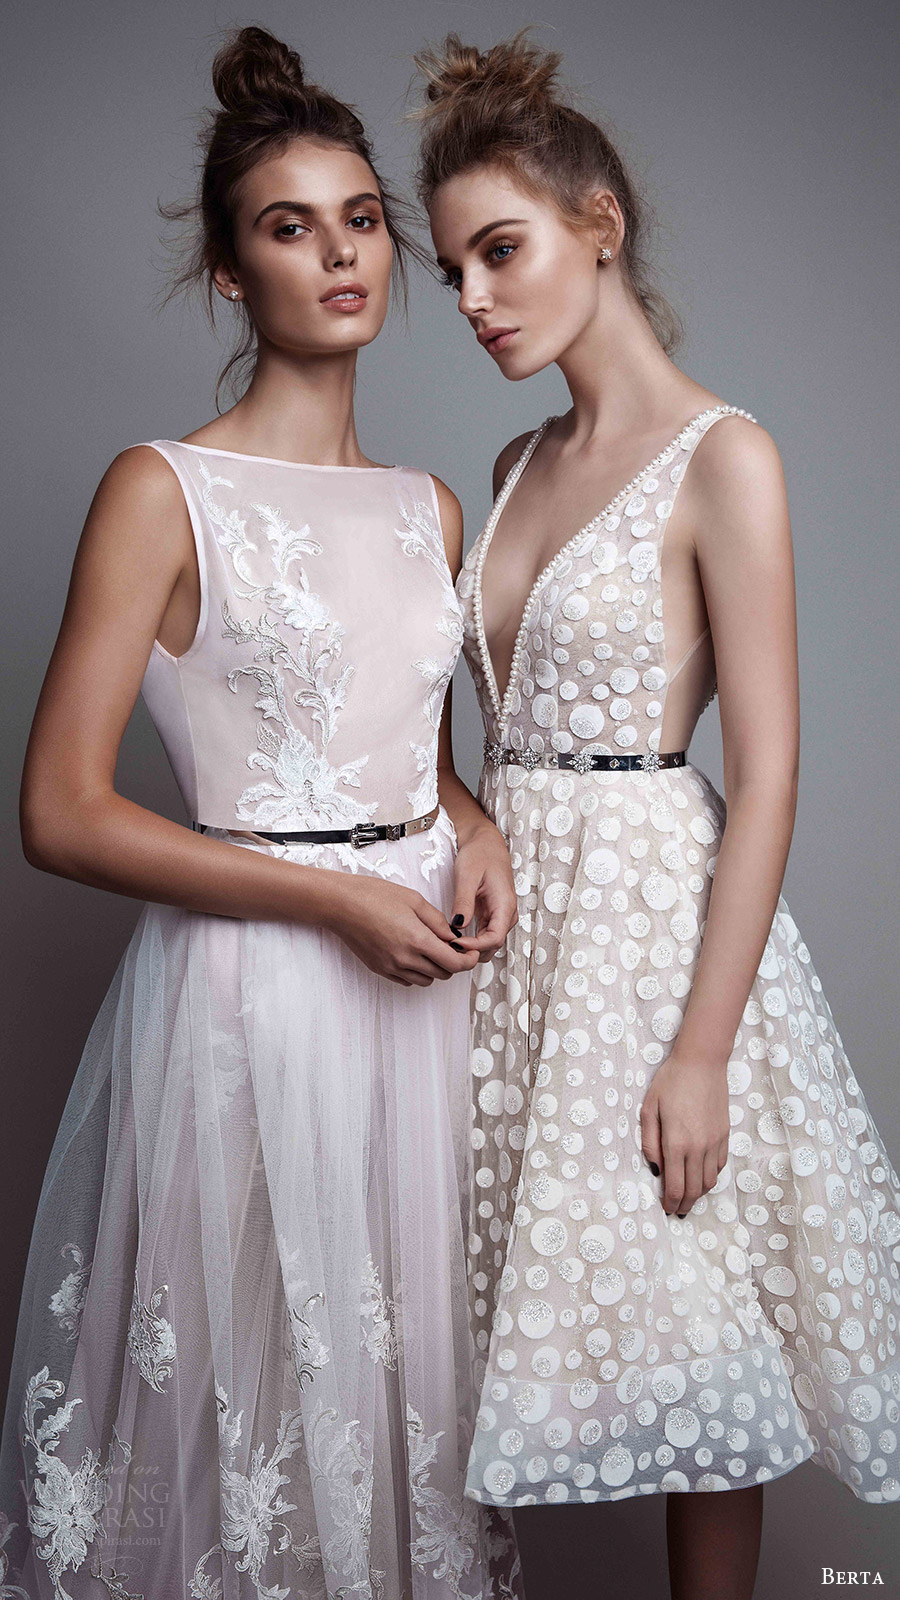 berta rtw fall 2017 (17 16 and 17 15) white and off white wedding dress style evening gown mv